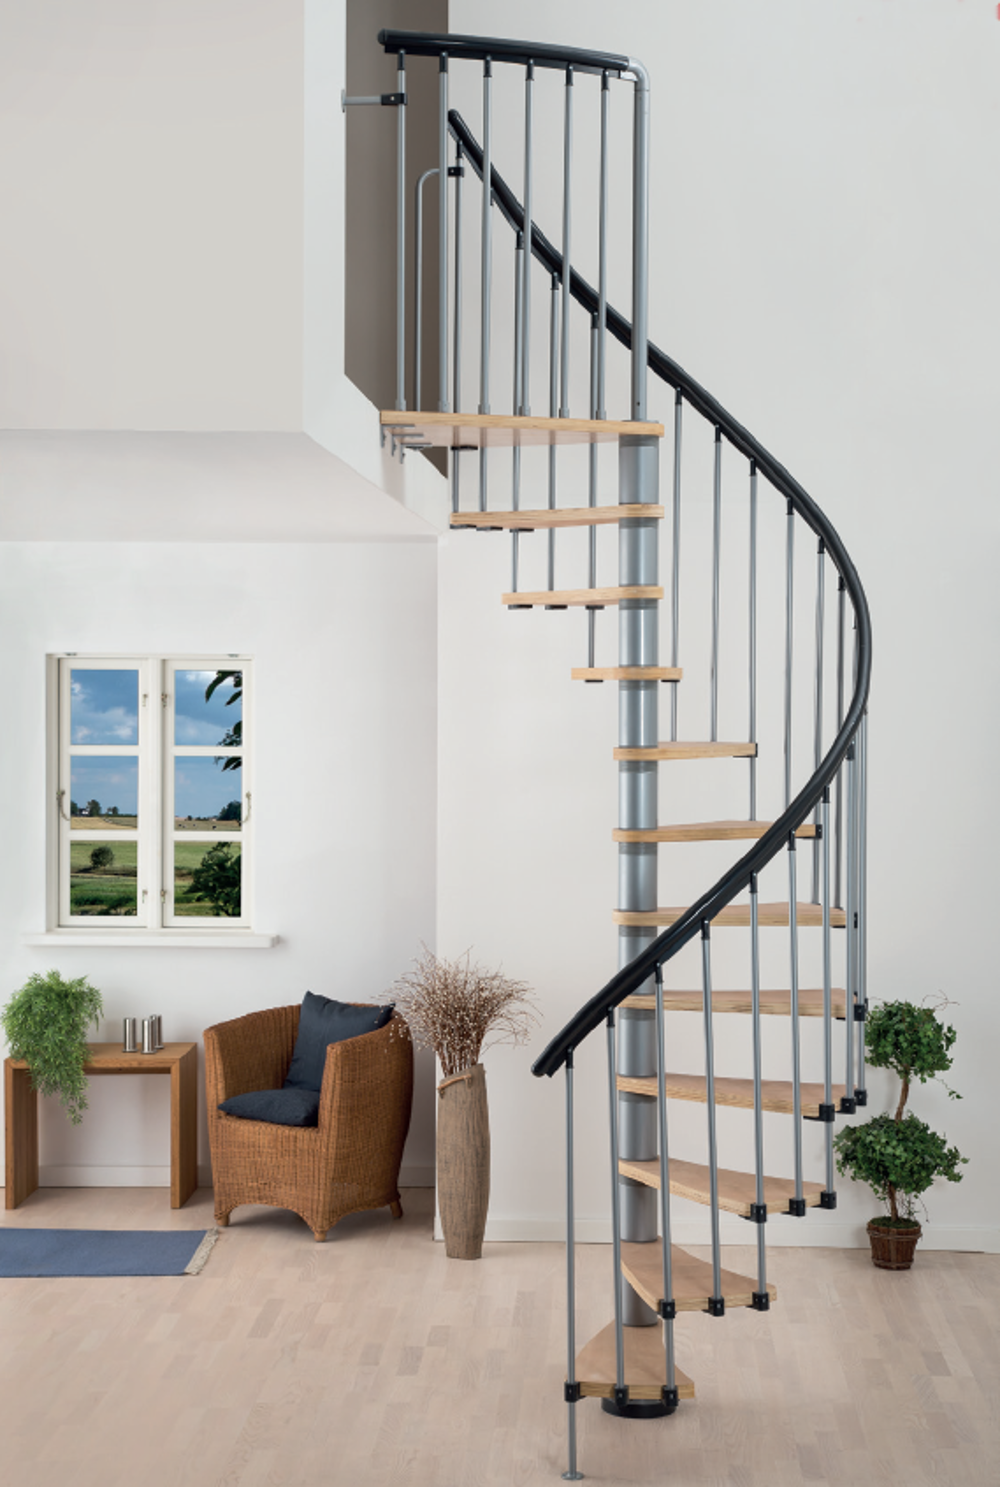 Spiral Staircases Prices - How Affordable Are They Really?